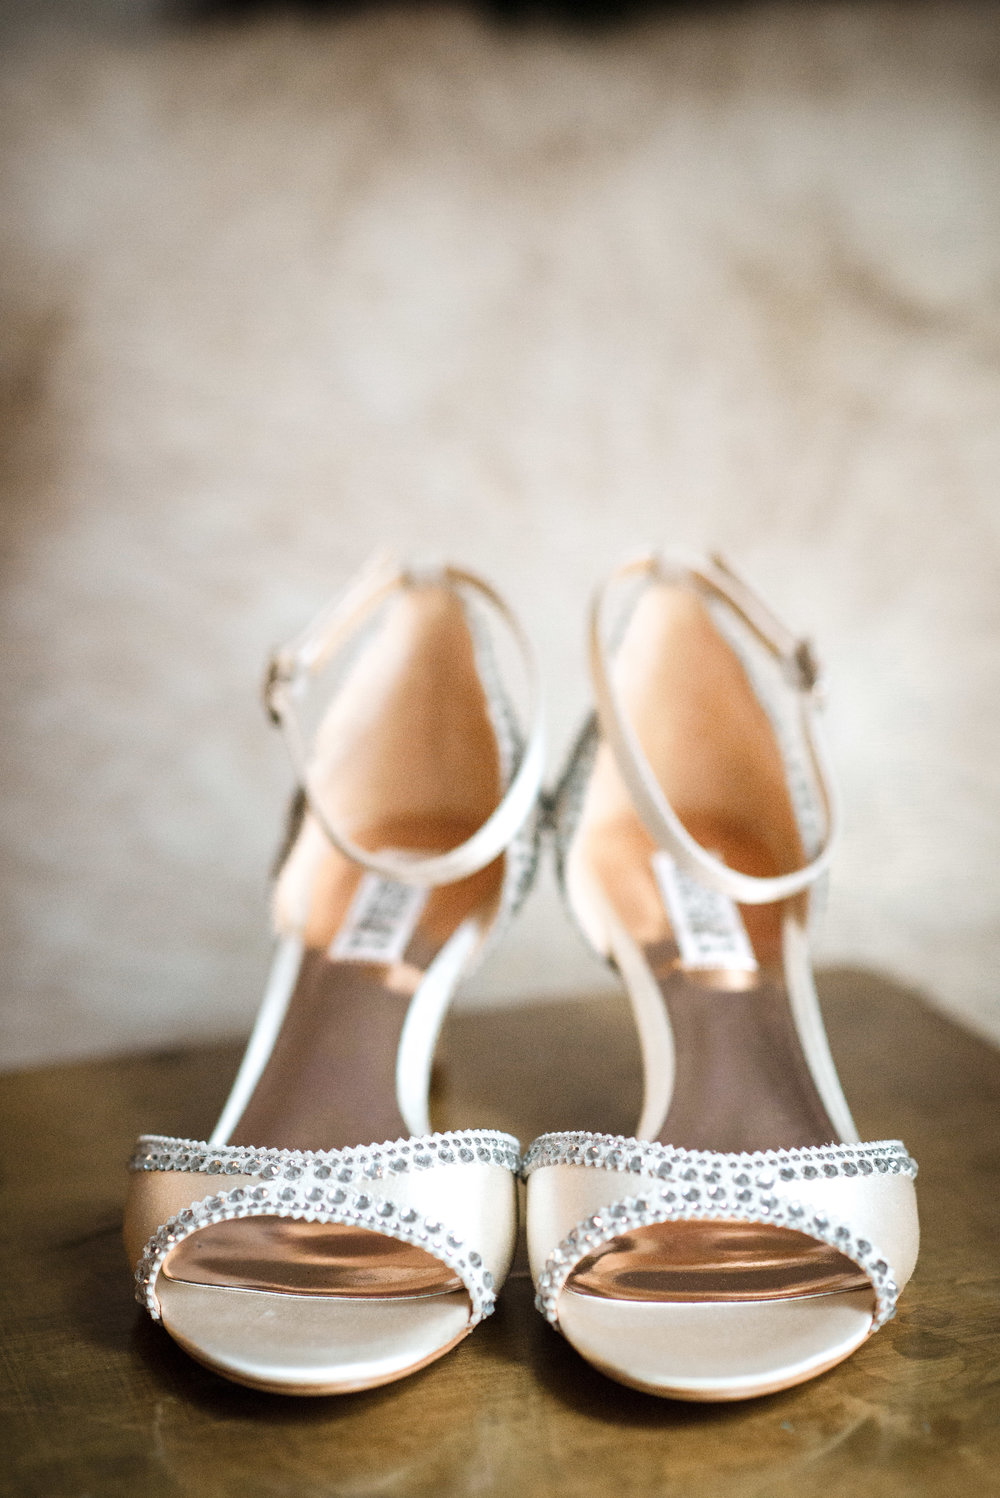 Wedding Shoe Detail Photo 1.jpg